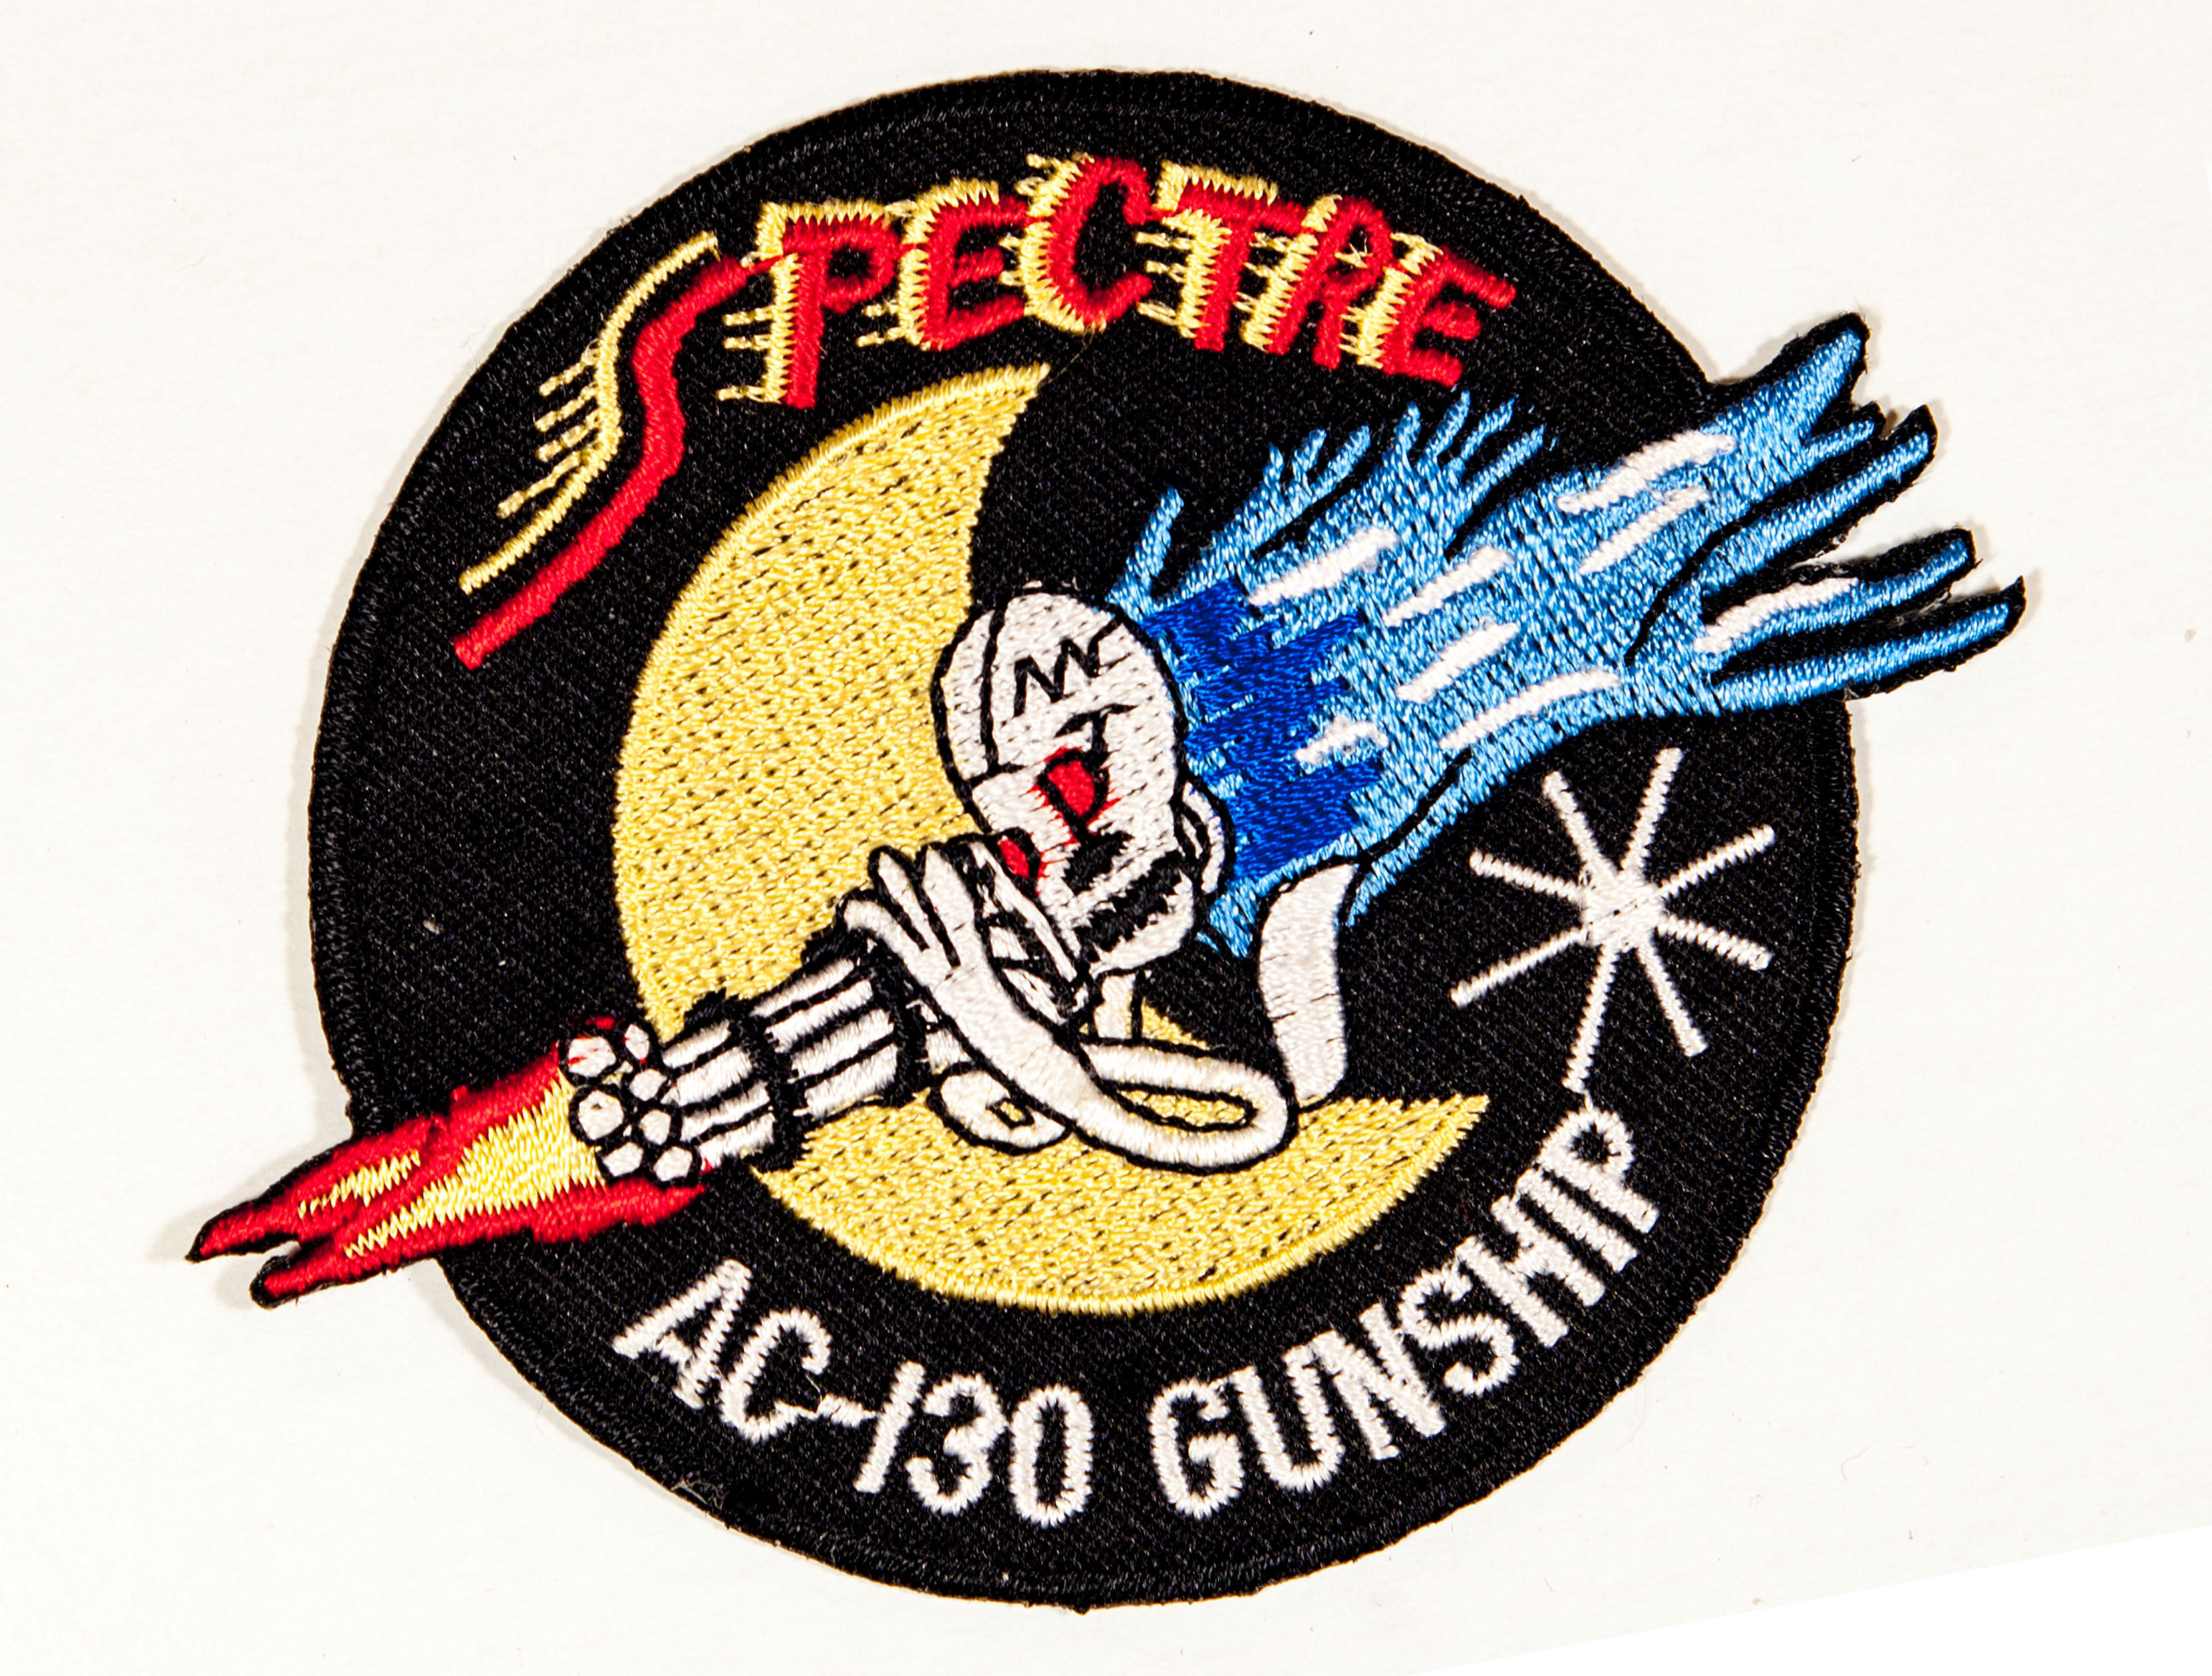 Ac-130 spectre gunship – military patches and pins.